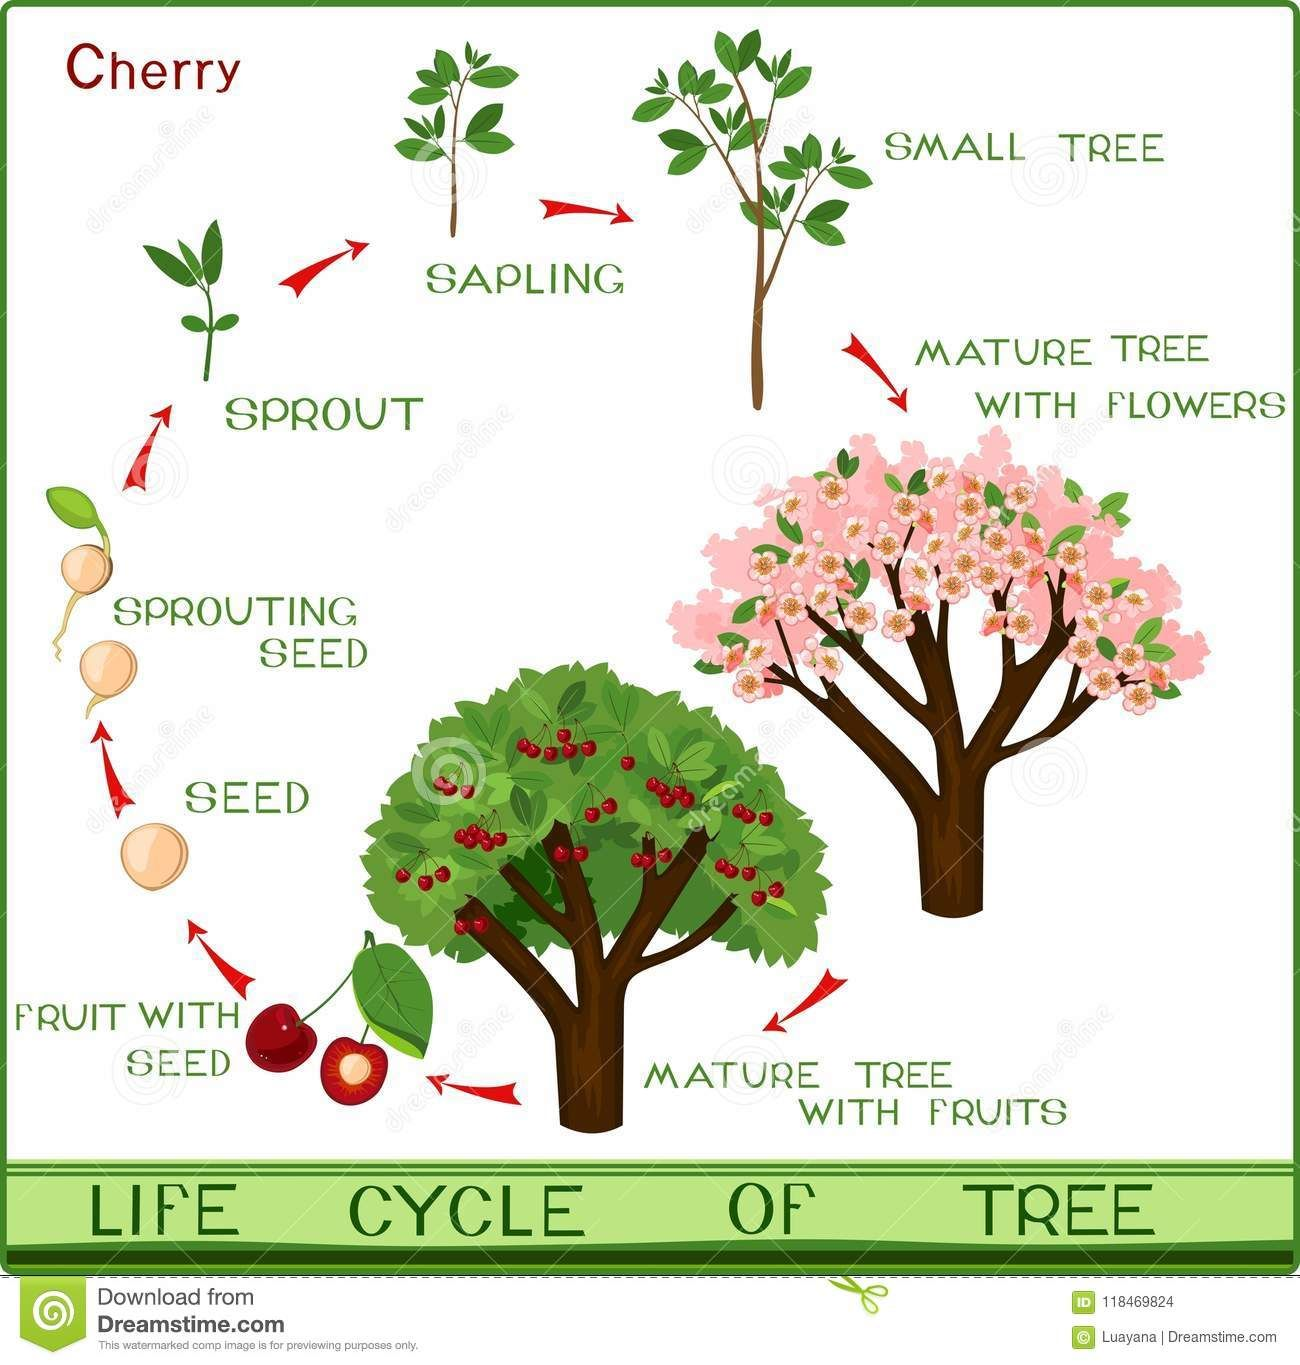 Illustration About Life Cycle Of Cherry Tree With Captions Plant Growing From Seed To Cherry Tree Illustration Of Life In 2021 Cherry Tree Life Cycles Growing Seeds